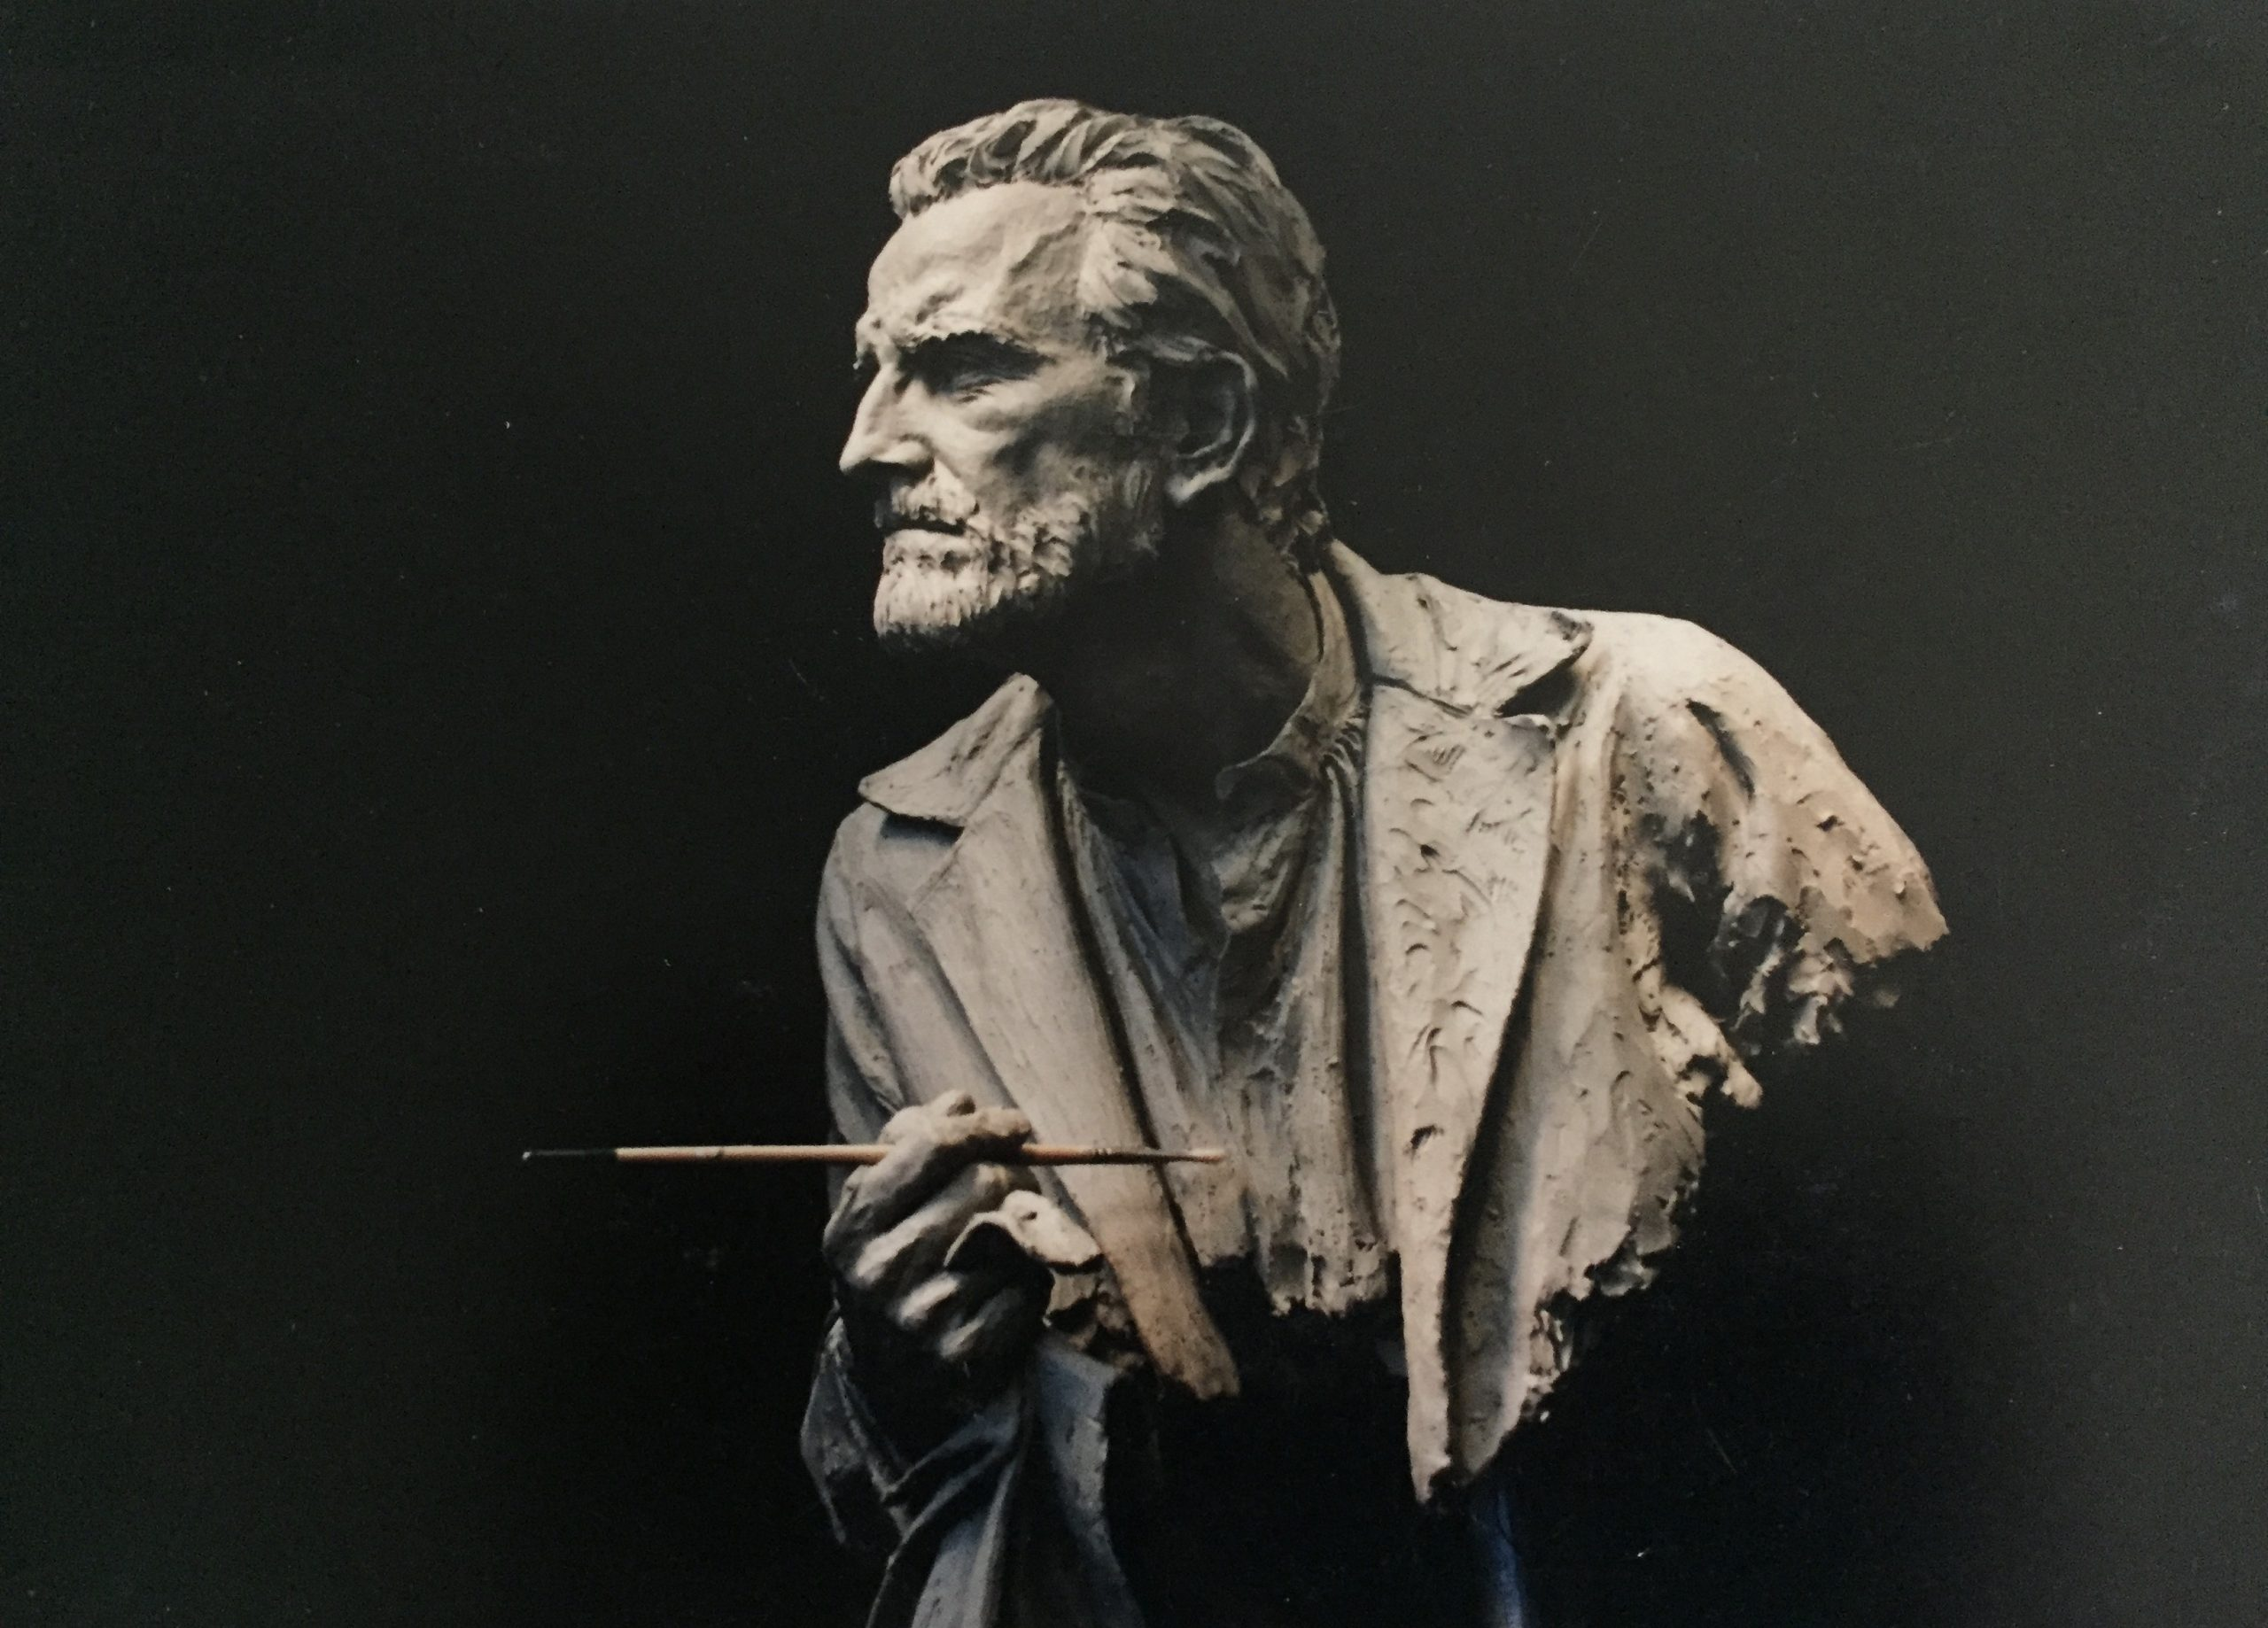 Henry Woronicz as Van Gogh, sculpture by Marion Young